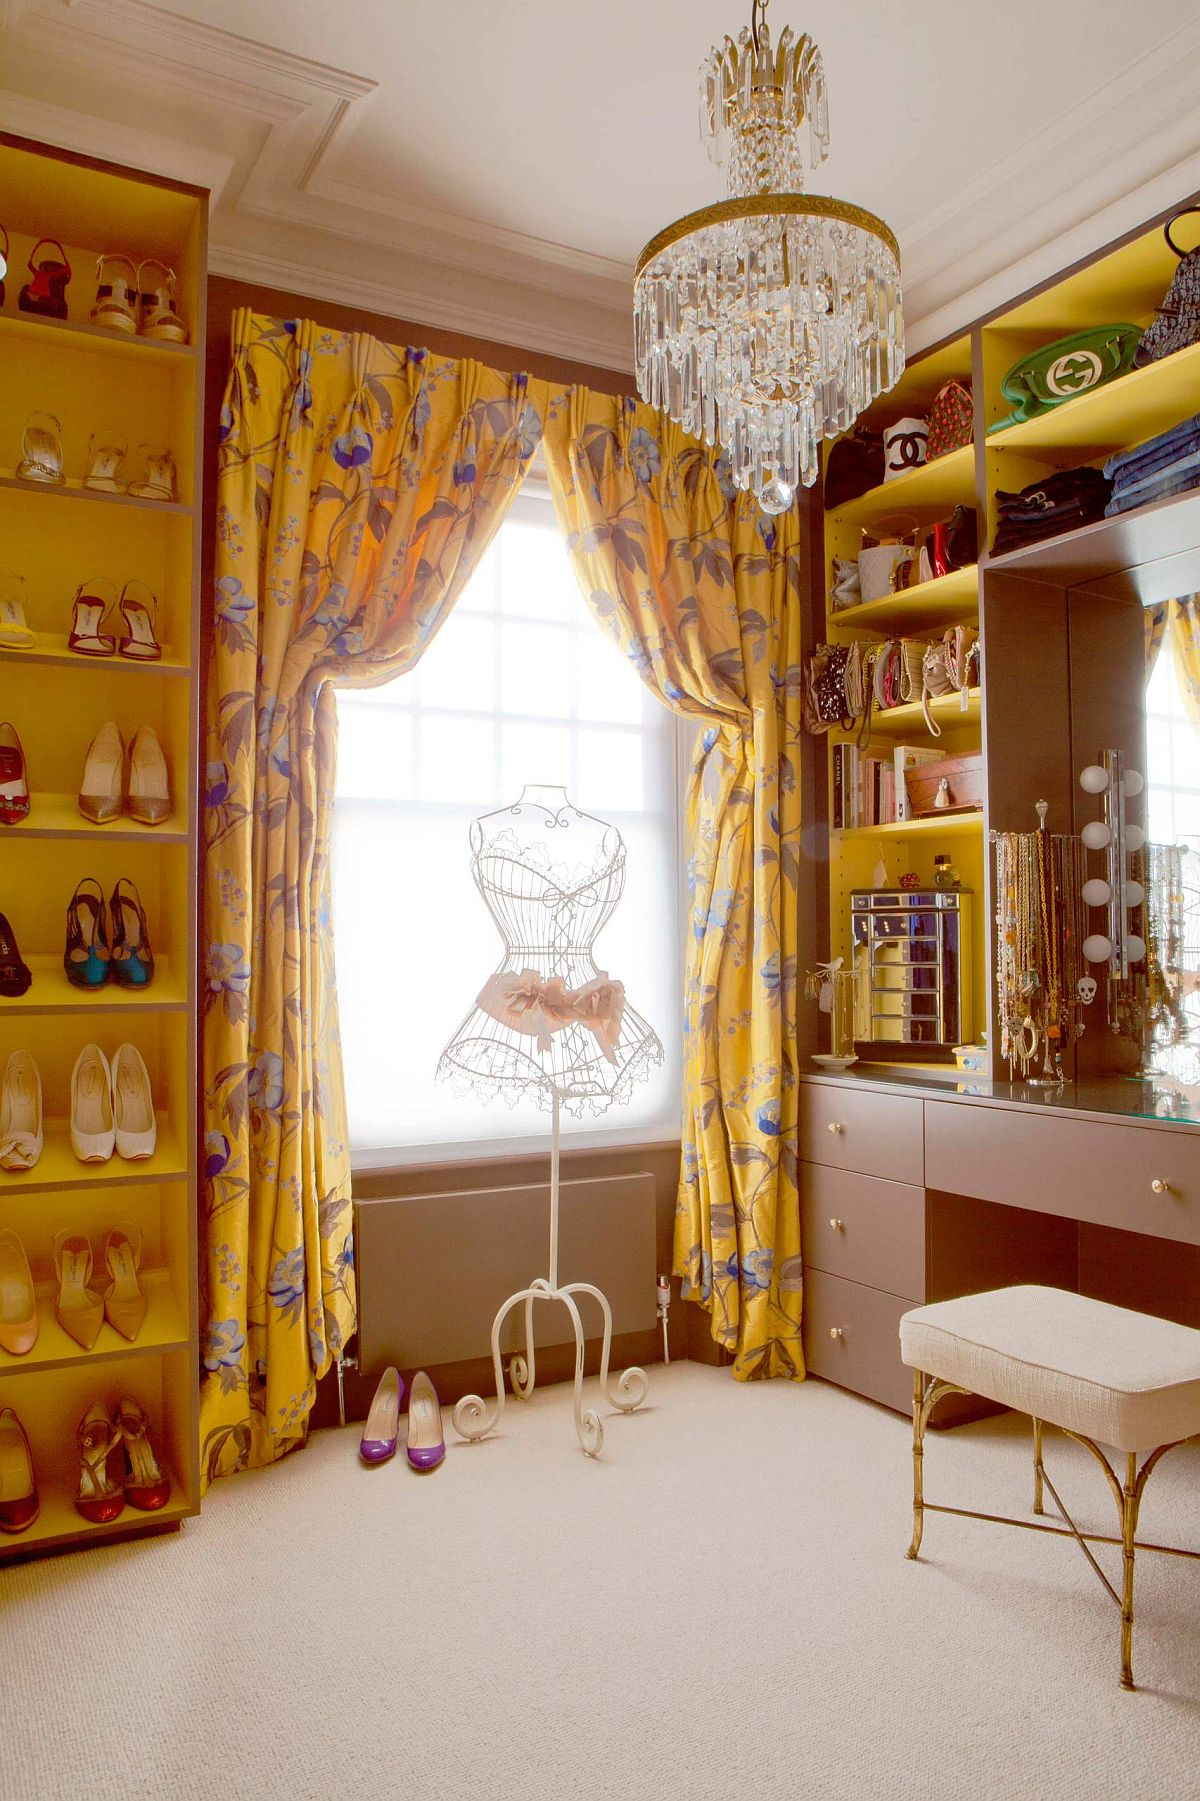 Yellow drapes and shelves bring color to this classic-eclectic walk-in closet with ample natural light